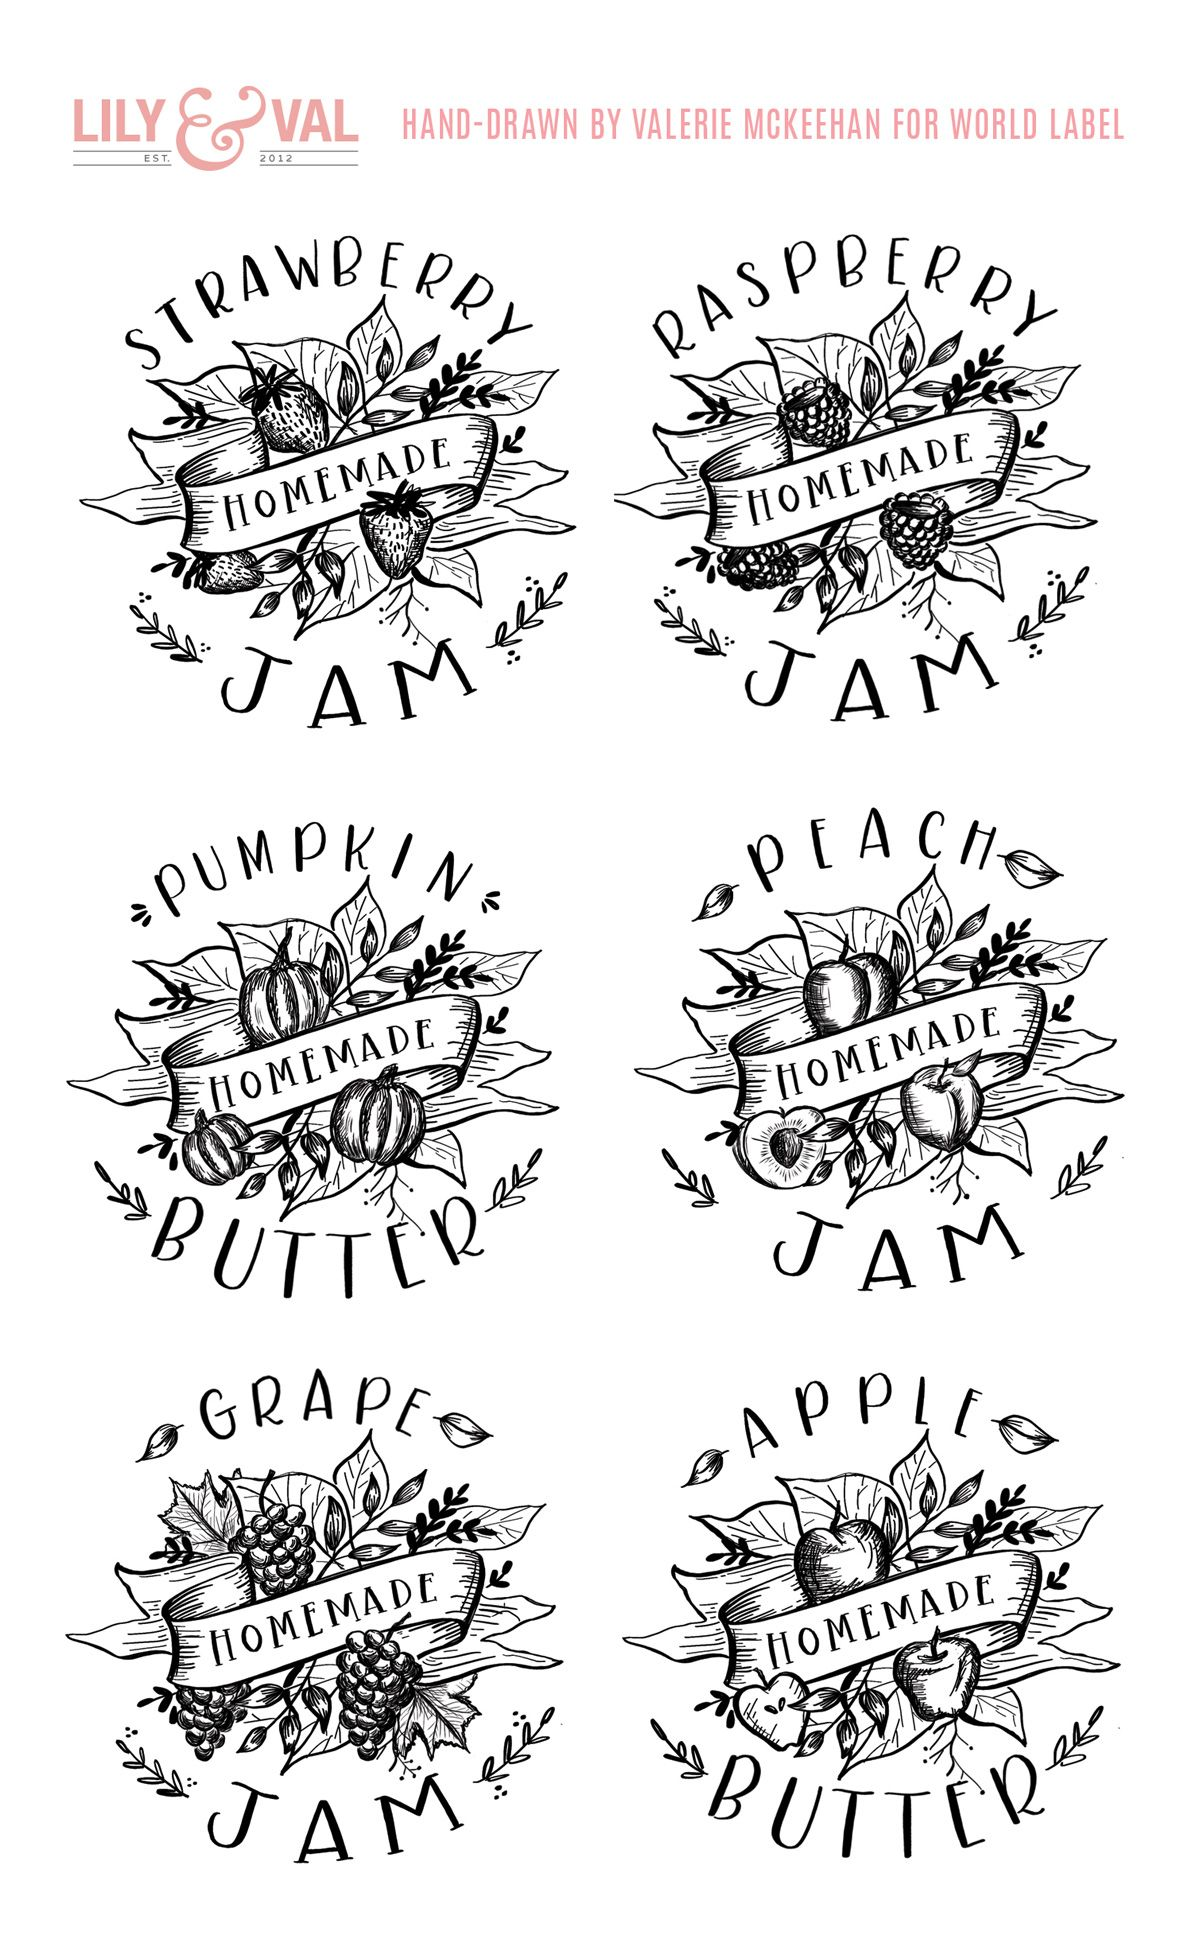 free lily & val for world label hand-drawn jam label downloads